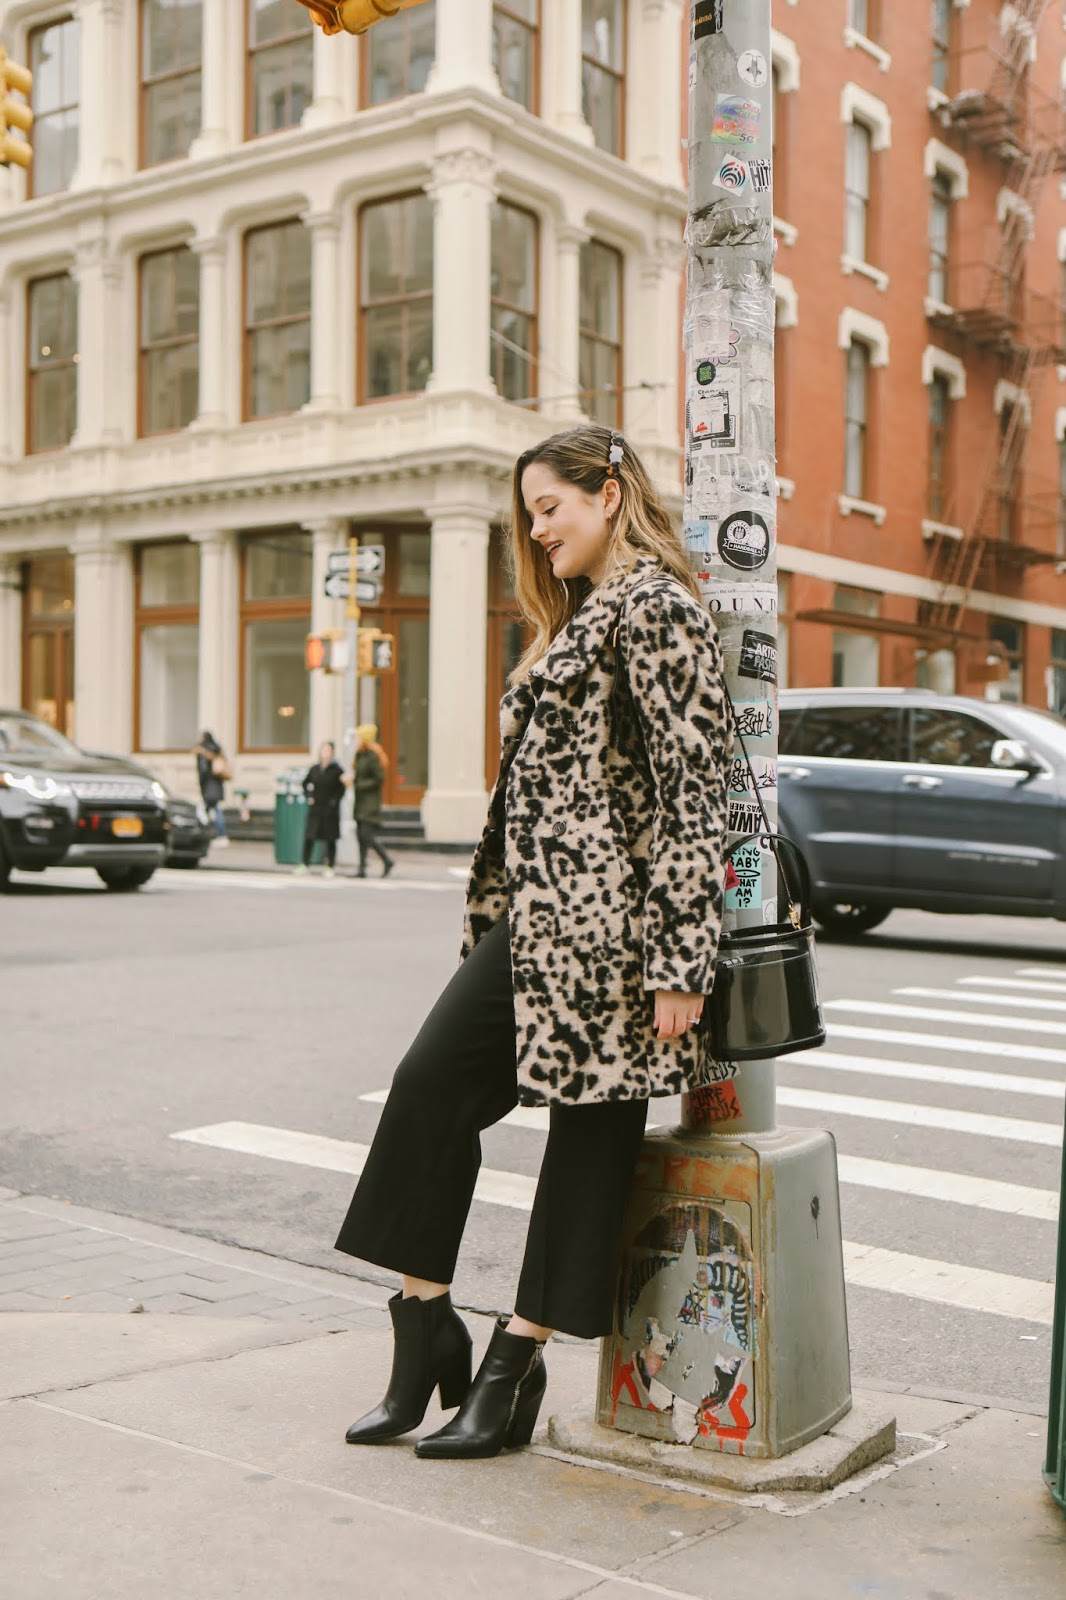 Nyc fashion blogger Kathleen Harper's winter street style.